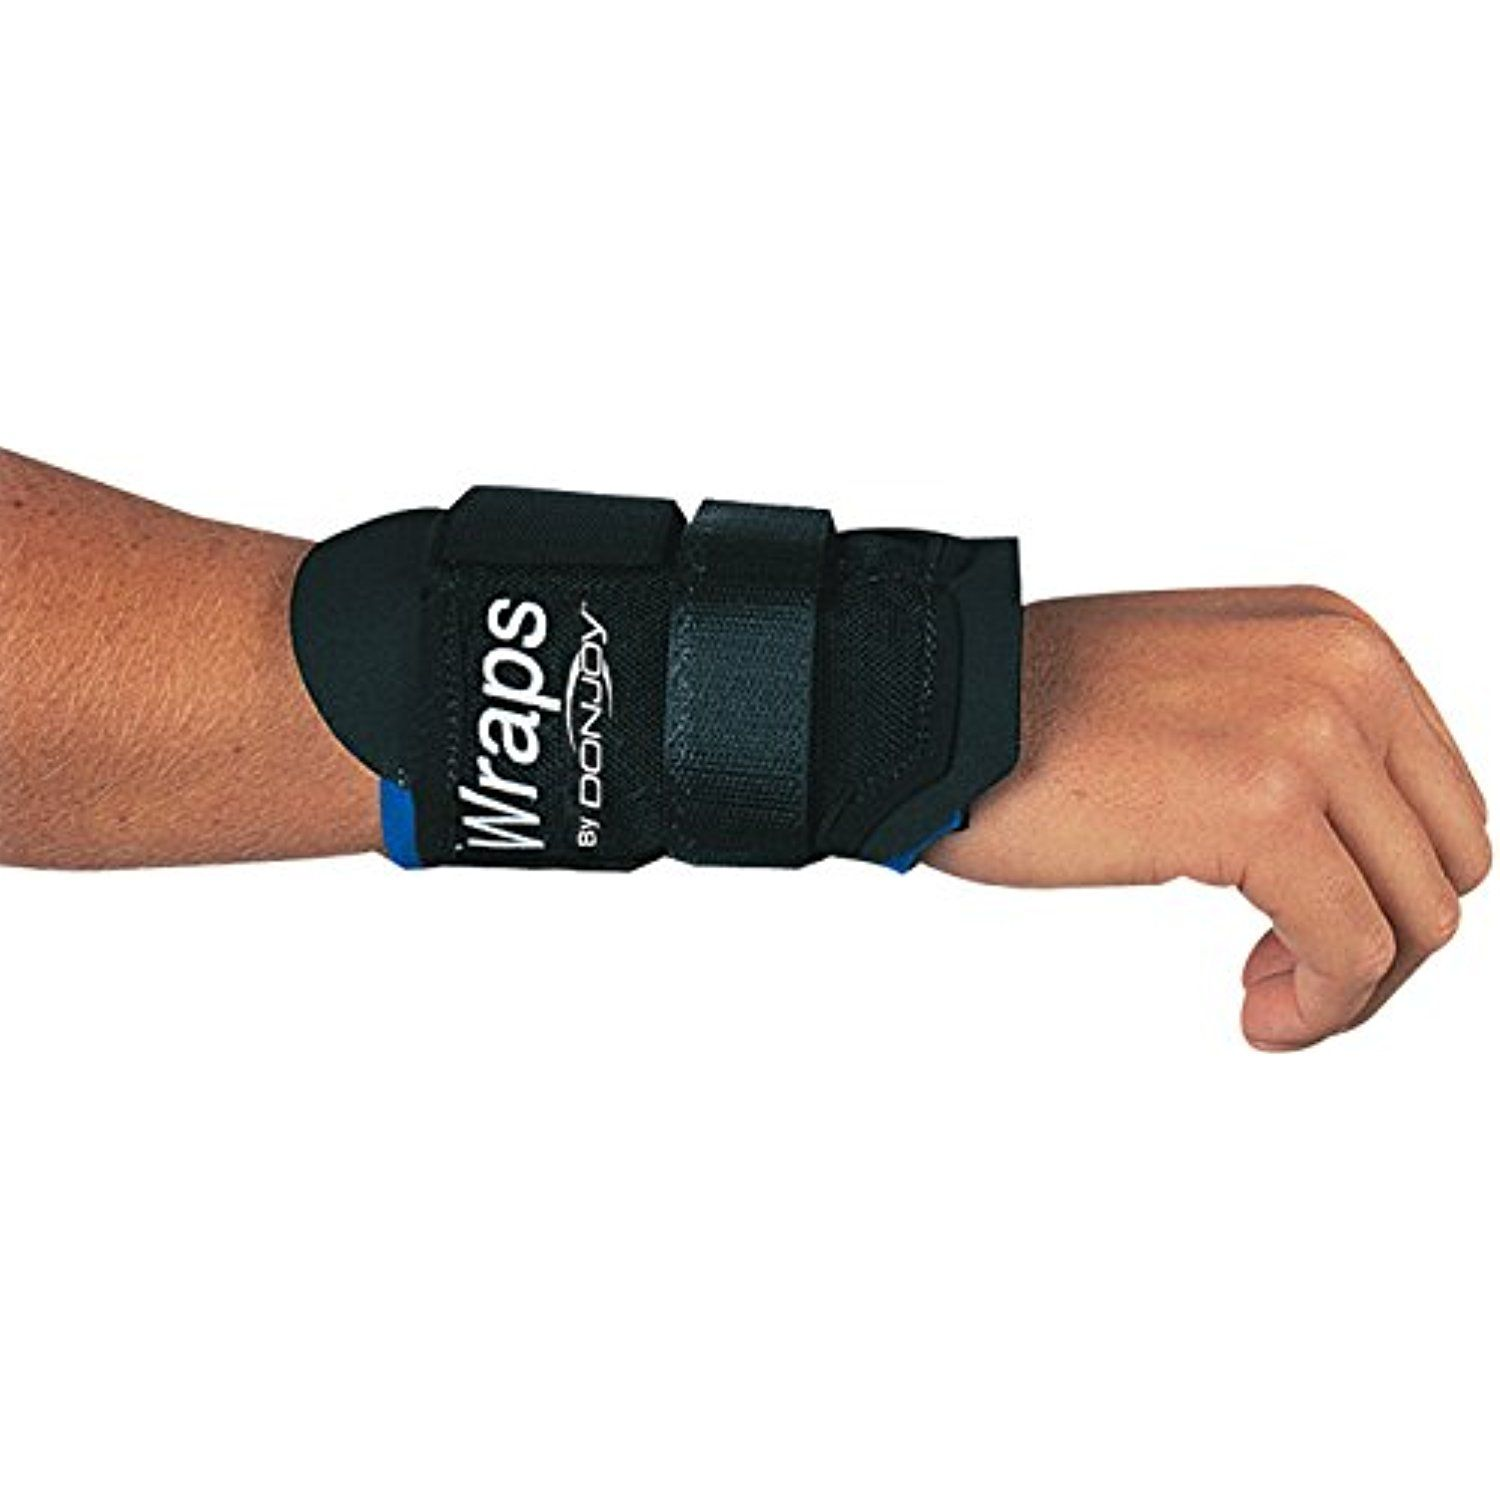 DonJoy Wrist Wraps Support Brace *** Check out the image